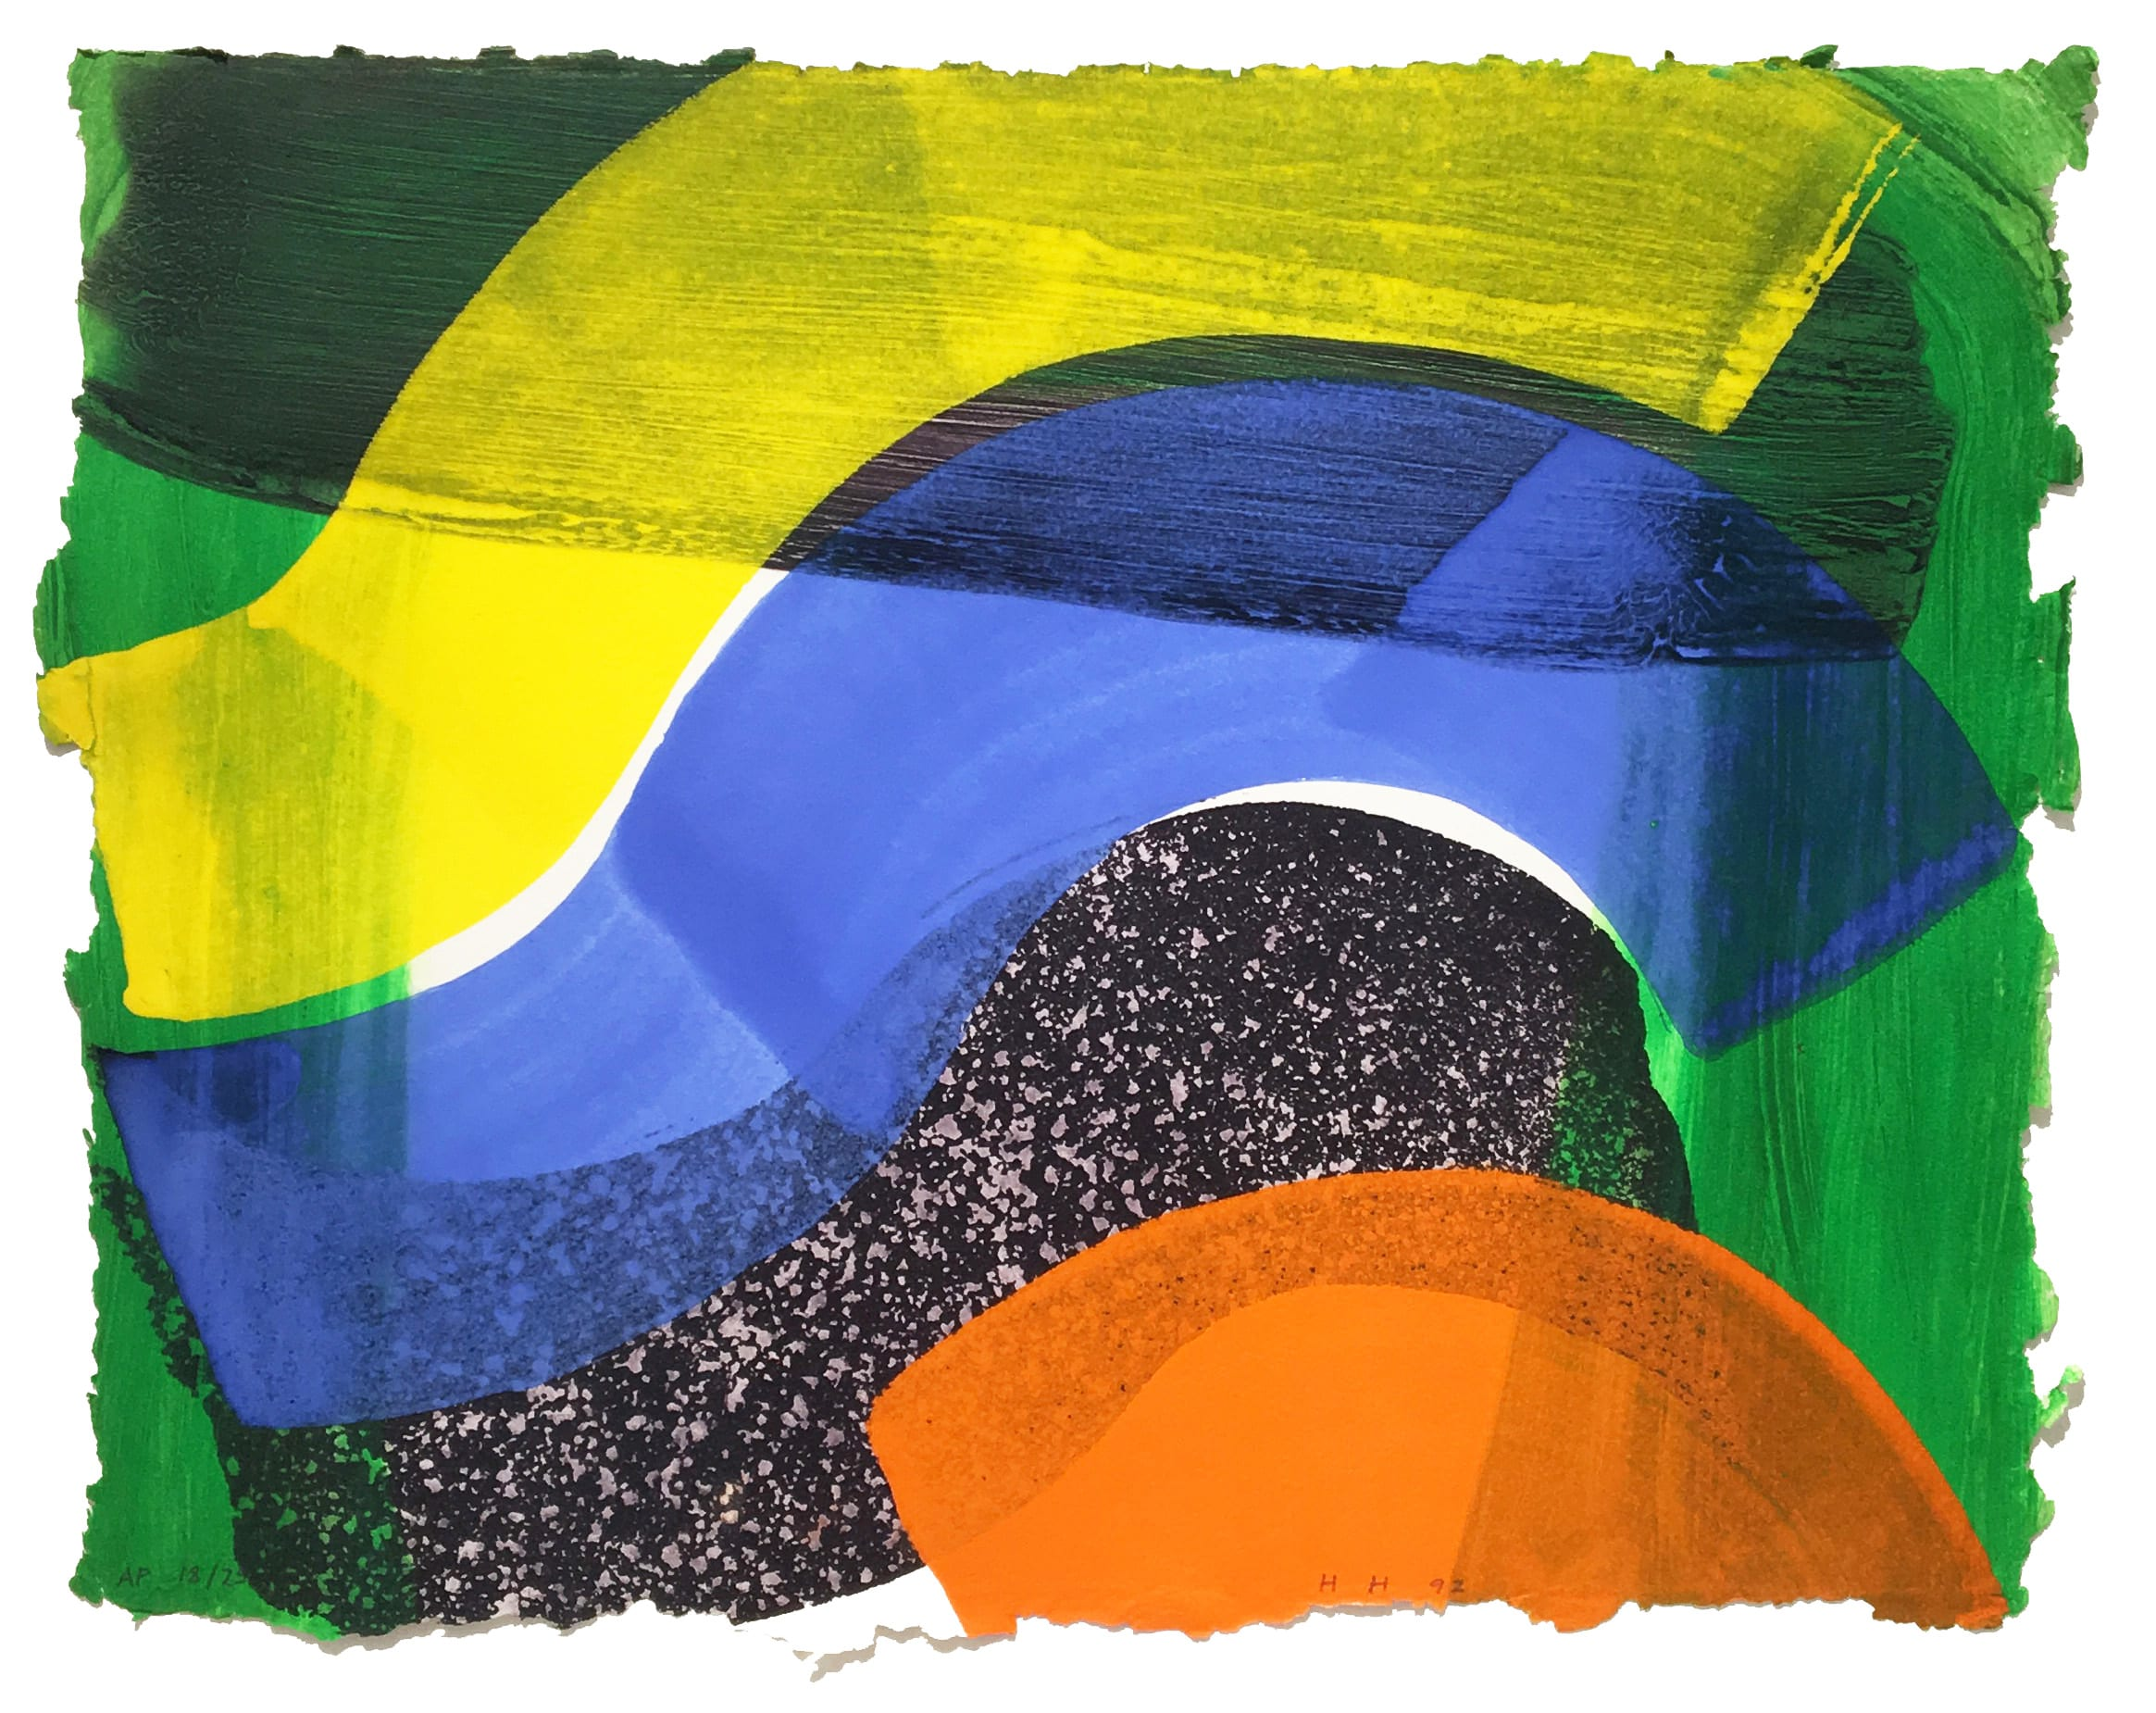 """<span class=""""link fancybox-details-link""""><a href=""""/artists/76-howard-hodgkin/works/1045-howard-hodgkin-put-out-more-flags-1992/"""">View Detail Page</a></span><div class=""""artist""""><strong>Howard Hodgkin</strong></div> 1932 - 2017 <div class=""""title""""><em>Put Out More Flags</em>, 1992</div> <div class=""""signed_and_dated"""">signed with initials and dated in pencil</div> <div class=""""medium"""">Lift-ground etching and aquatint - edition 72/75</div> <div class=""""dimensions"""">42 x 52.4cm</div>"""